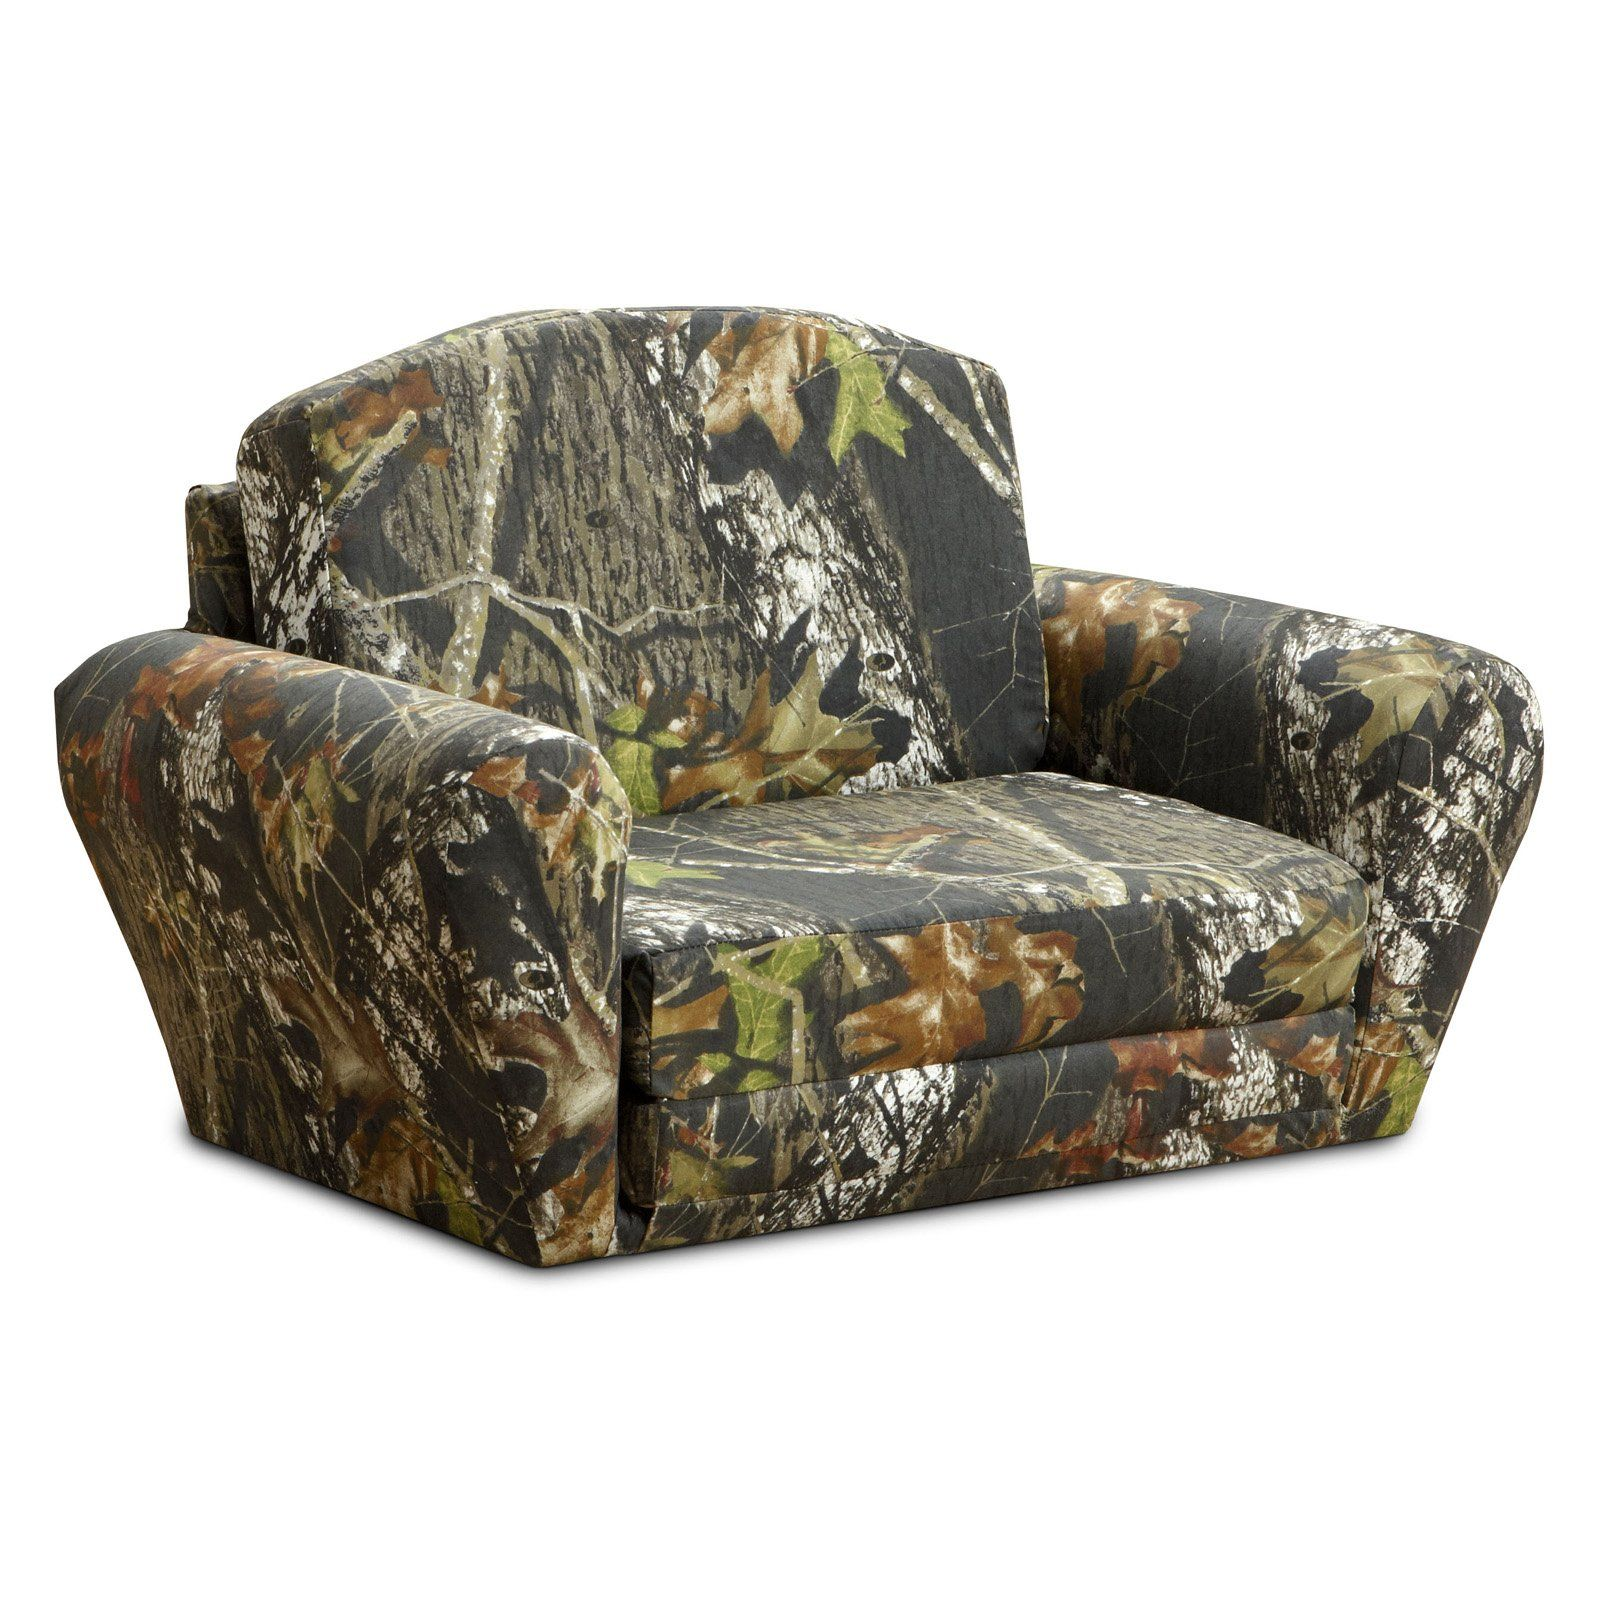 Camo Bedroom Ideas Kidz World Mossy Oak Camouflage Sleepover Sofa Snazzy Decorations